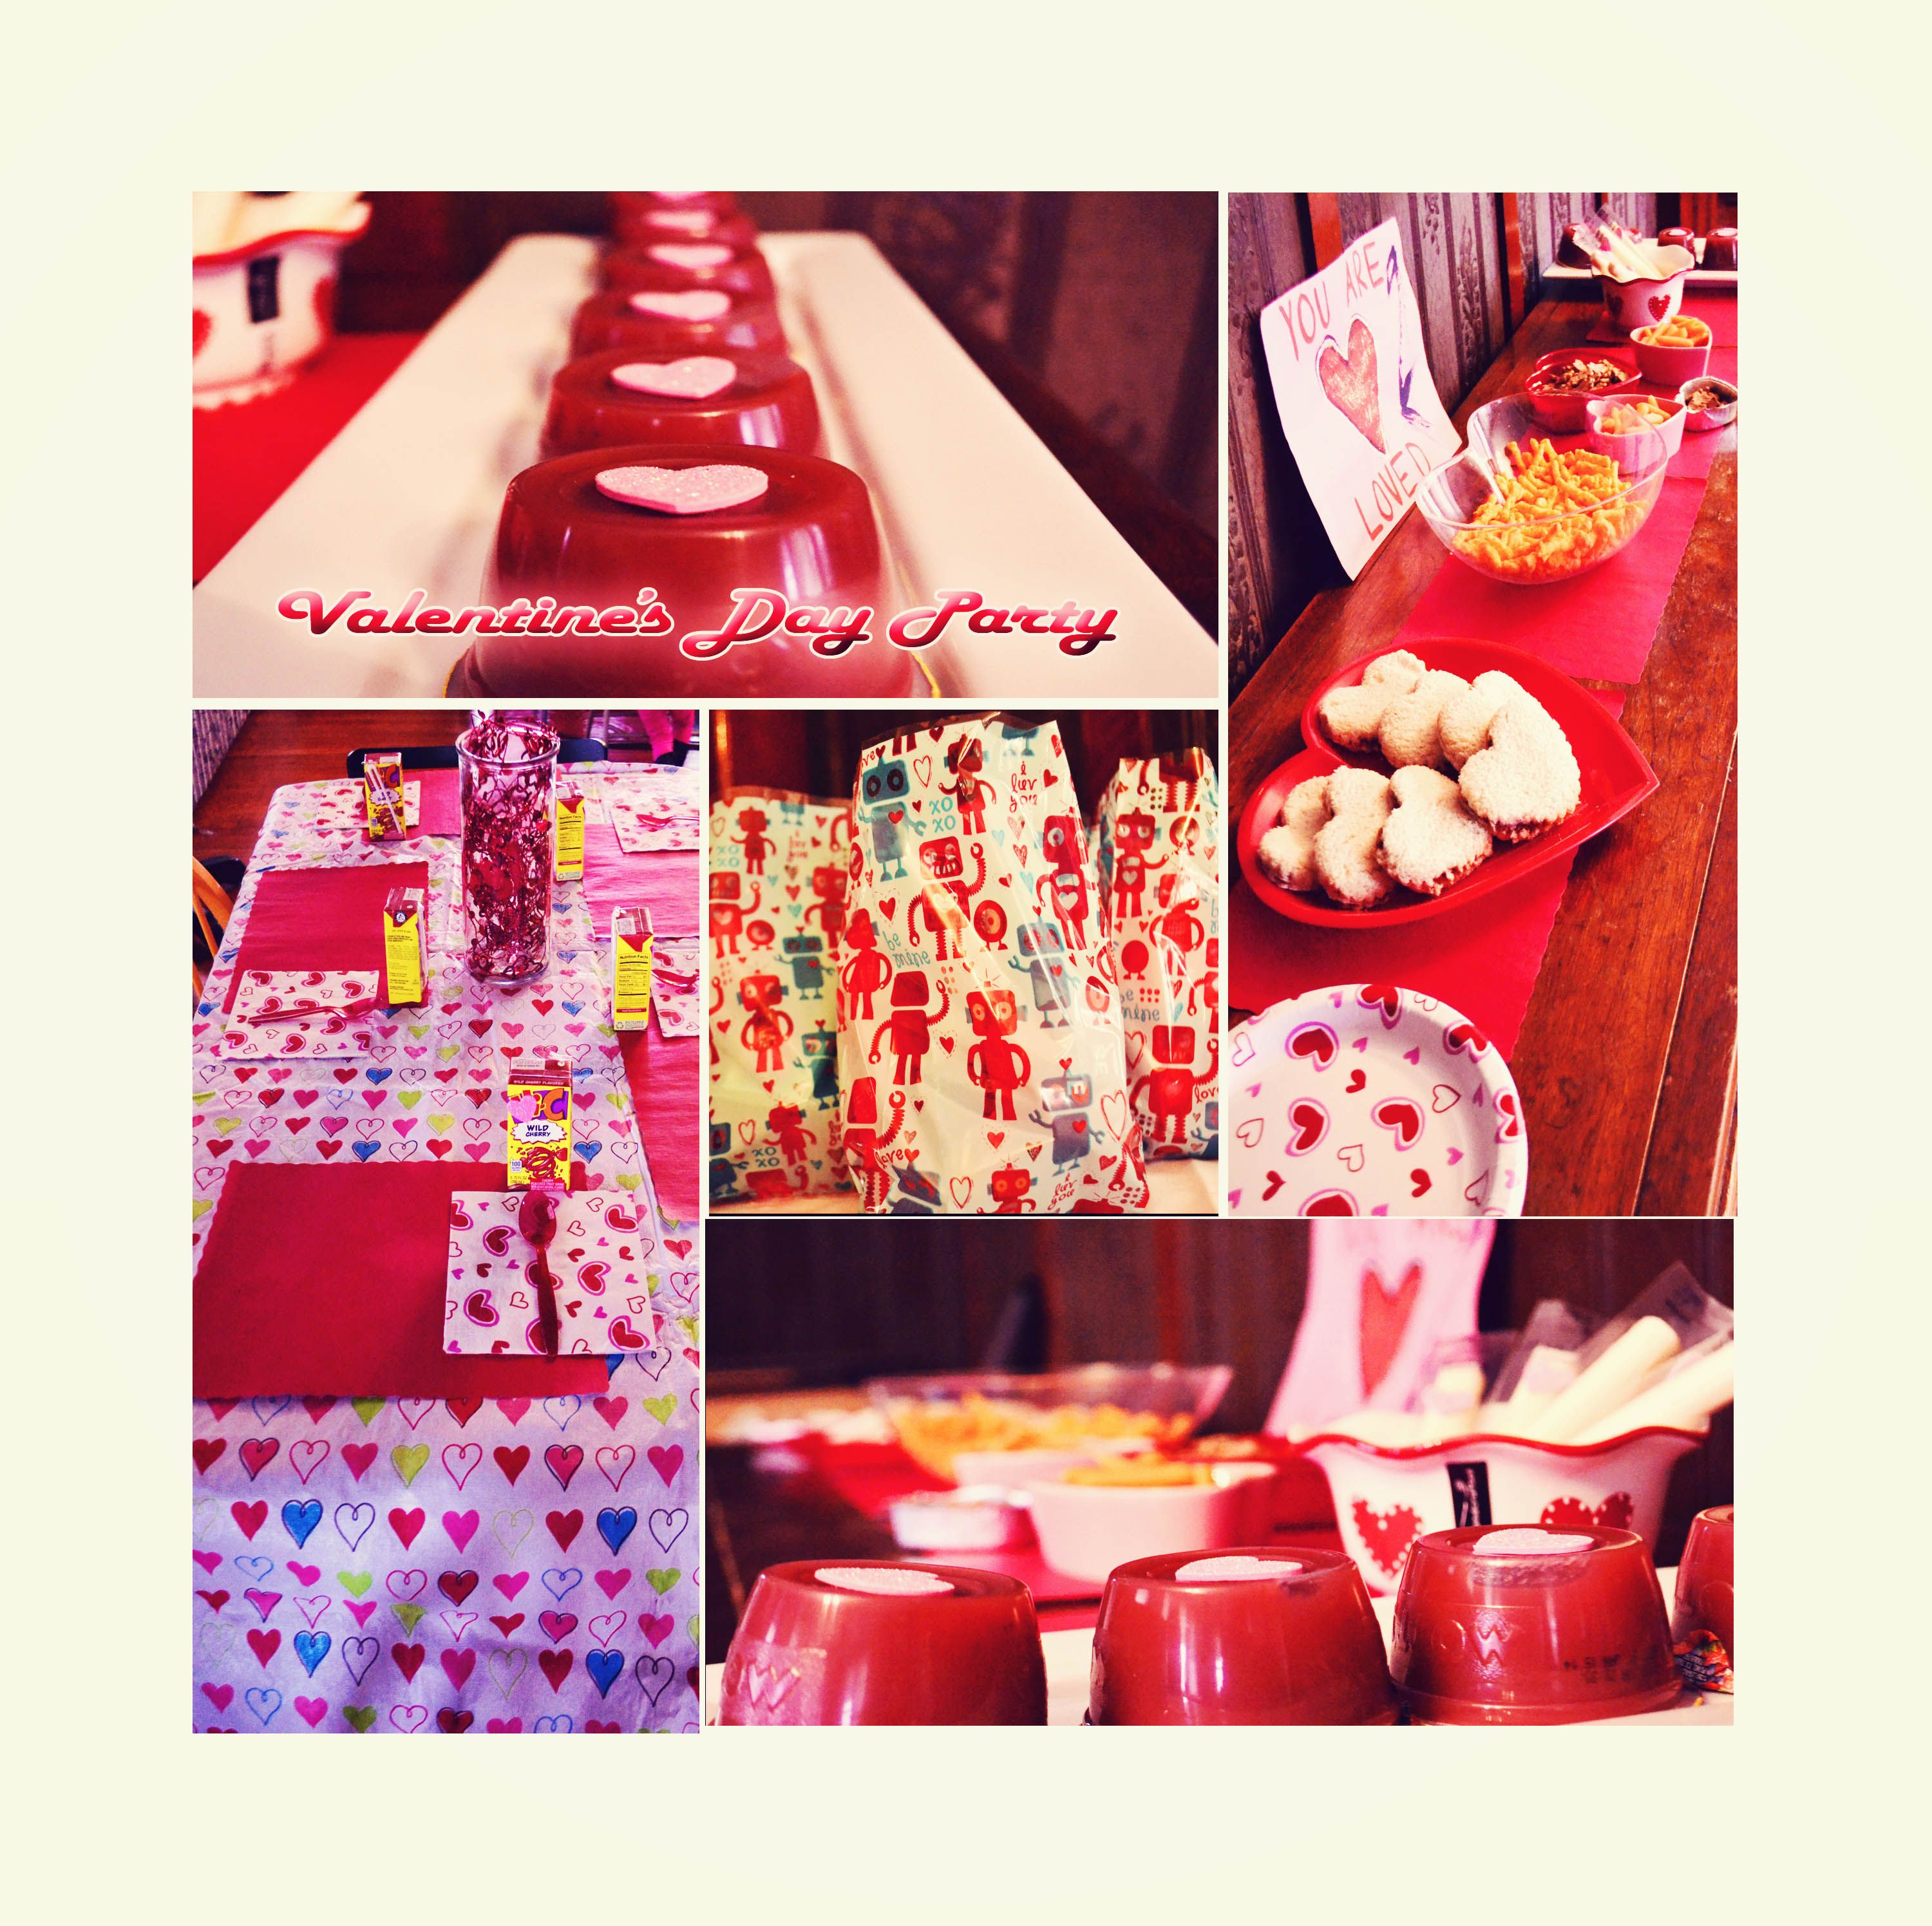 Jenny's super cute Valentine's Day party. :)